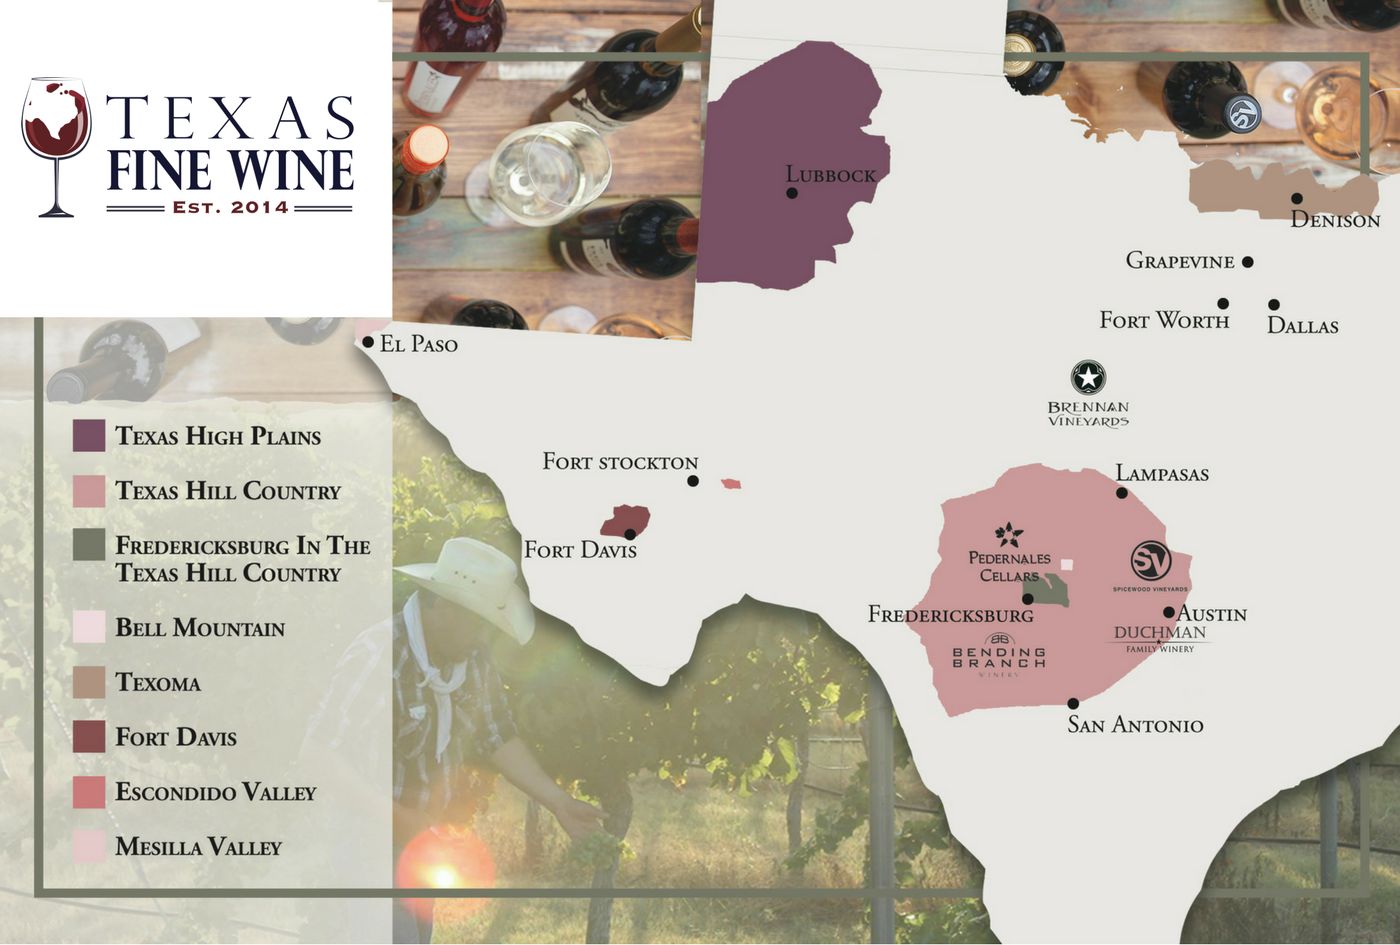 Map Of Texas Wineries.About Texas Fine Wine